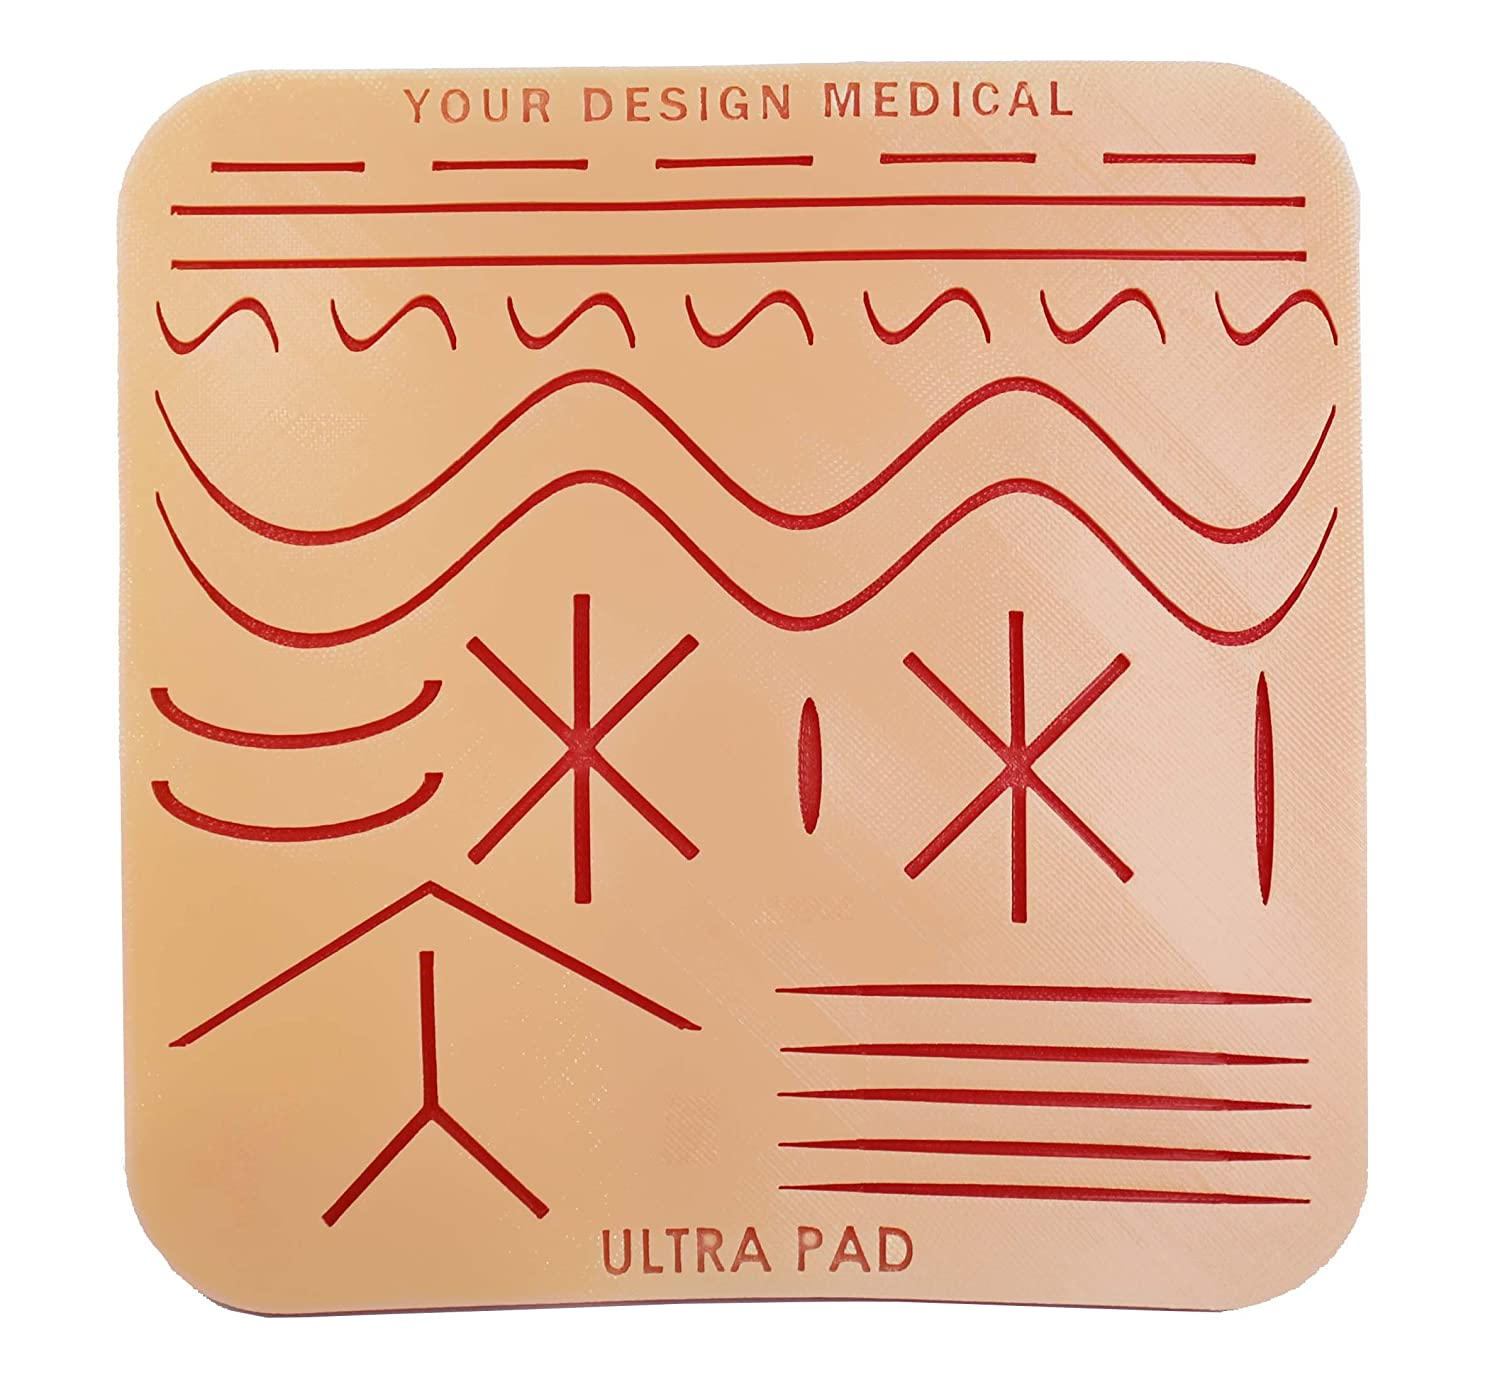 Your Design Medical – 8x8' Durable UltraPad 3-Layer Suture Pad - 64 Square inches with 28 Wounds -–The Largest Suturing Practice Pad Available! Made in Brooklyn, USA – Access to Free Educational Mate